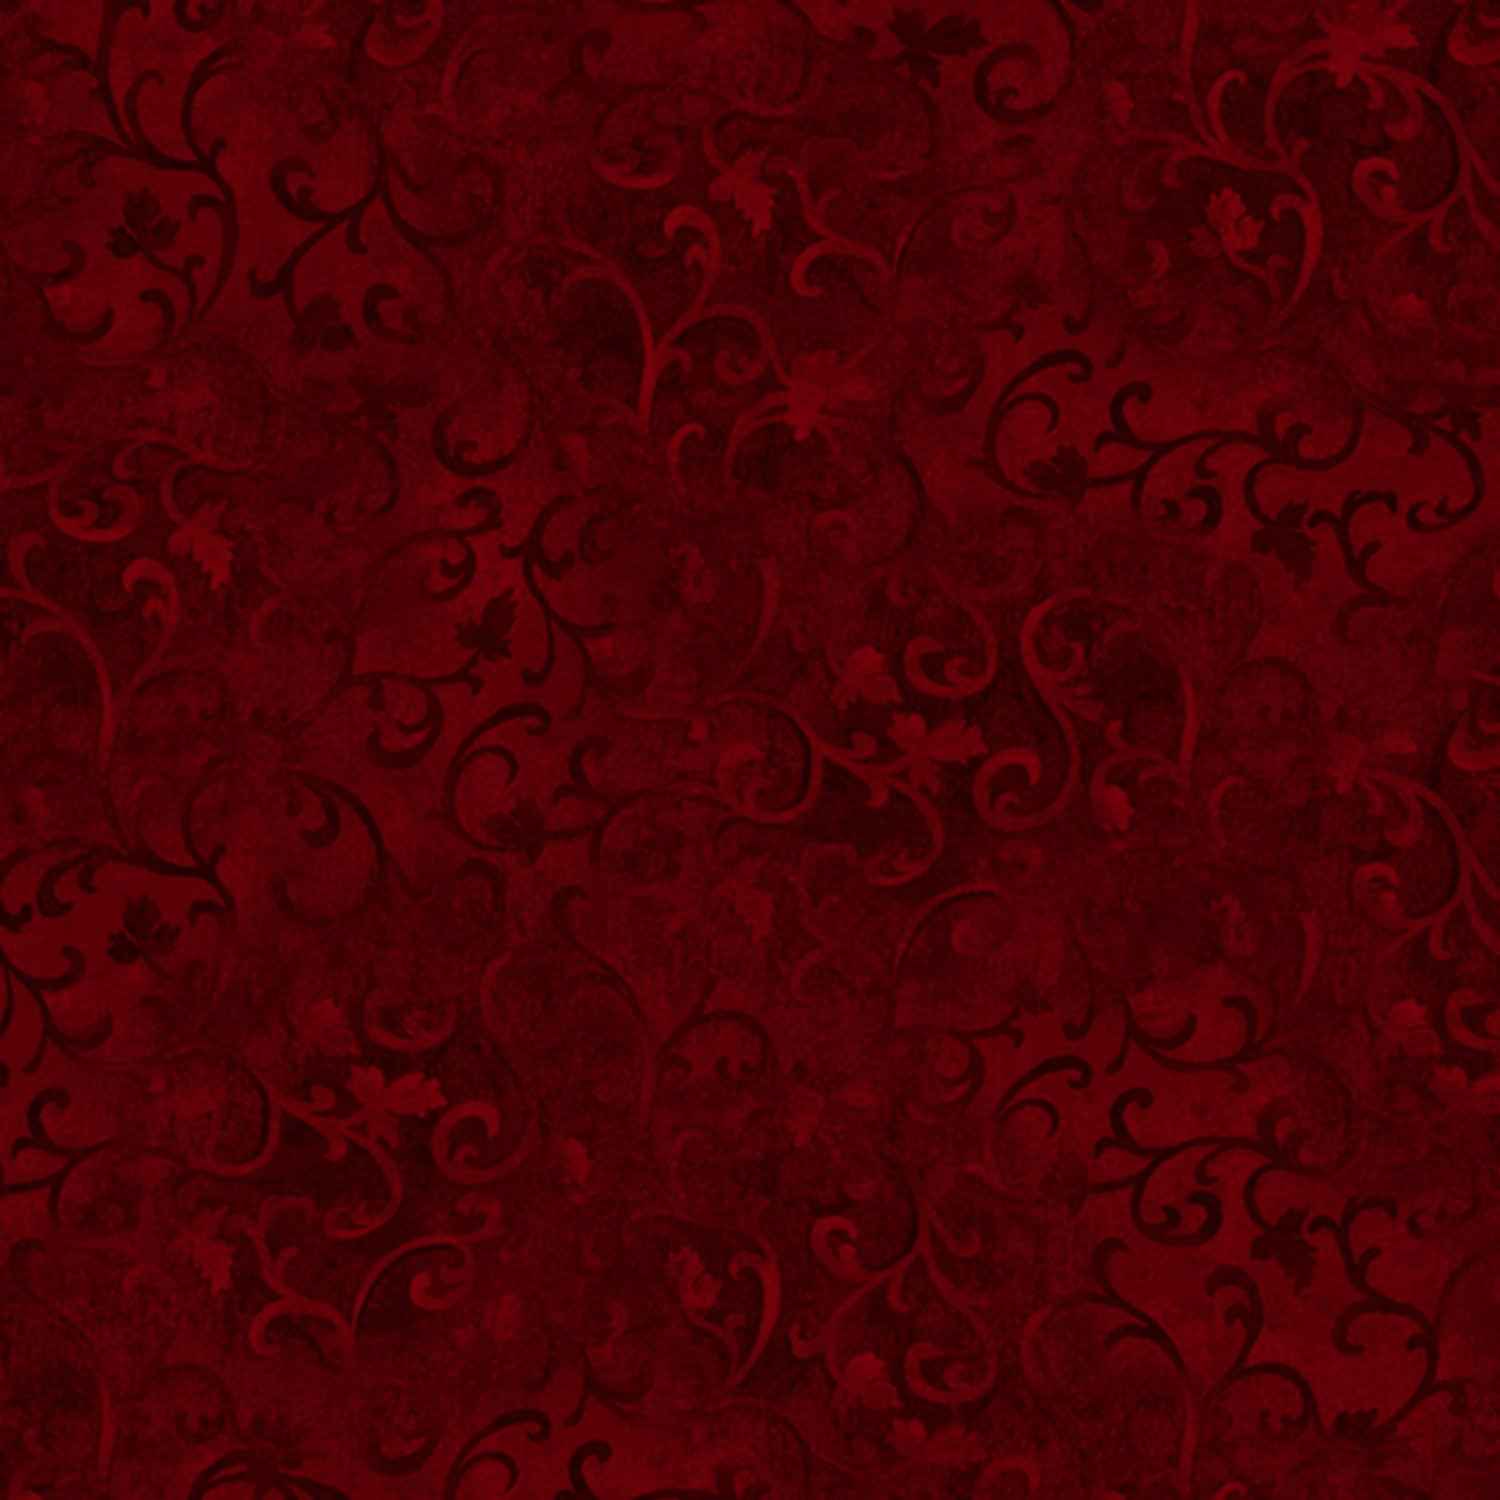 Scroll Essentials Basics Collection  in Burgundy by Wilmington Prints sku:89025-389